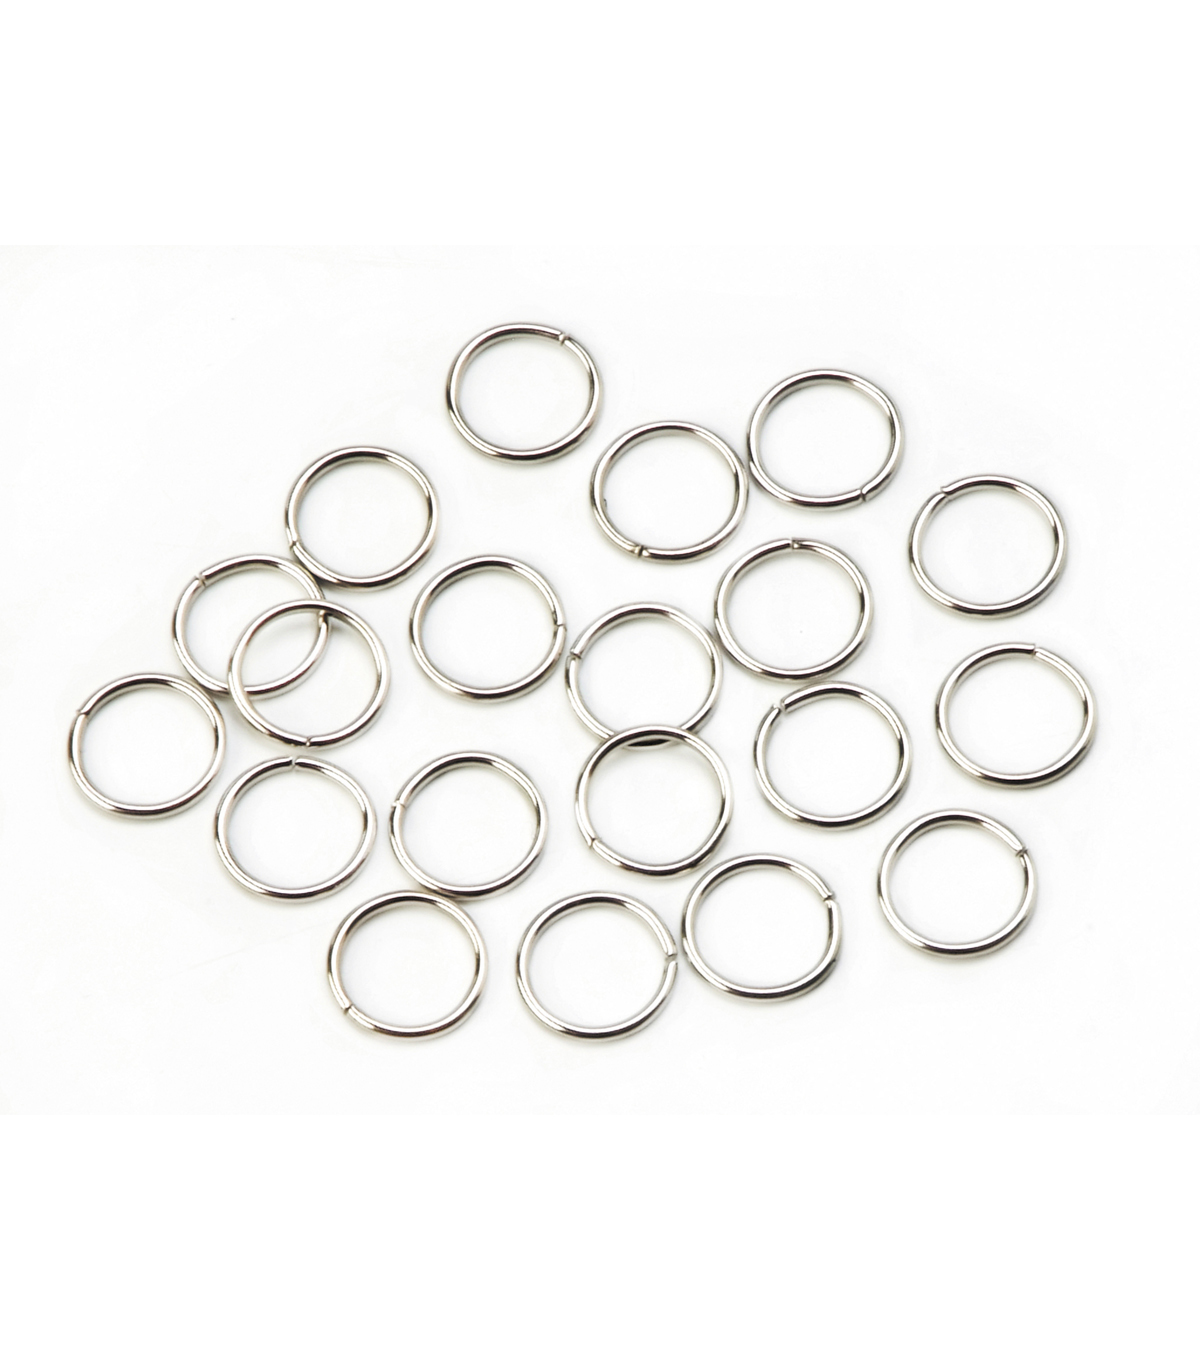 10mm Brass Jump Ring, Nickel Finish